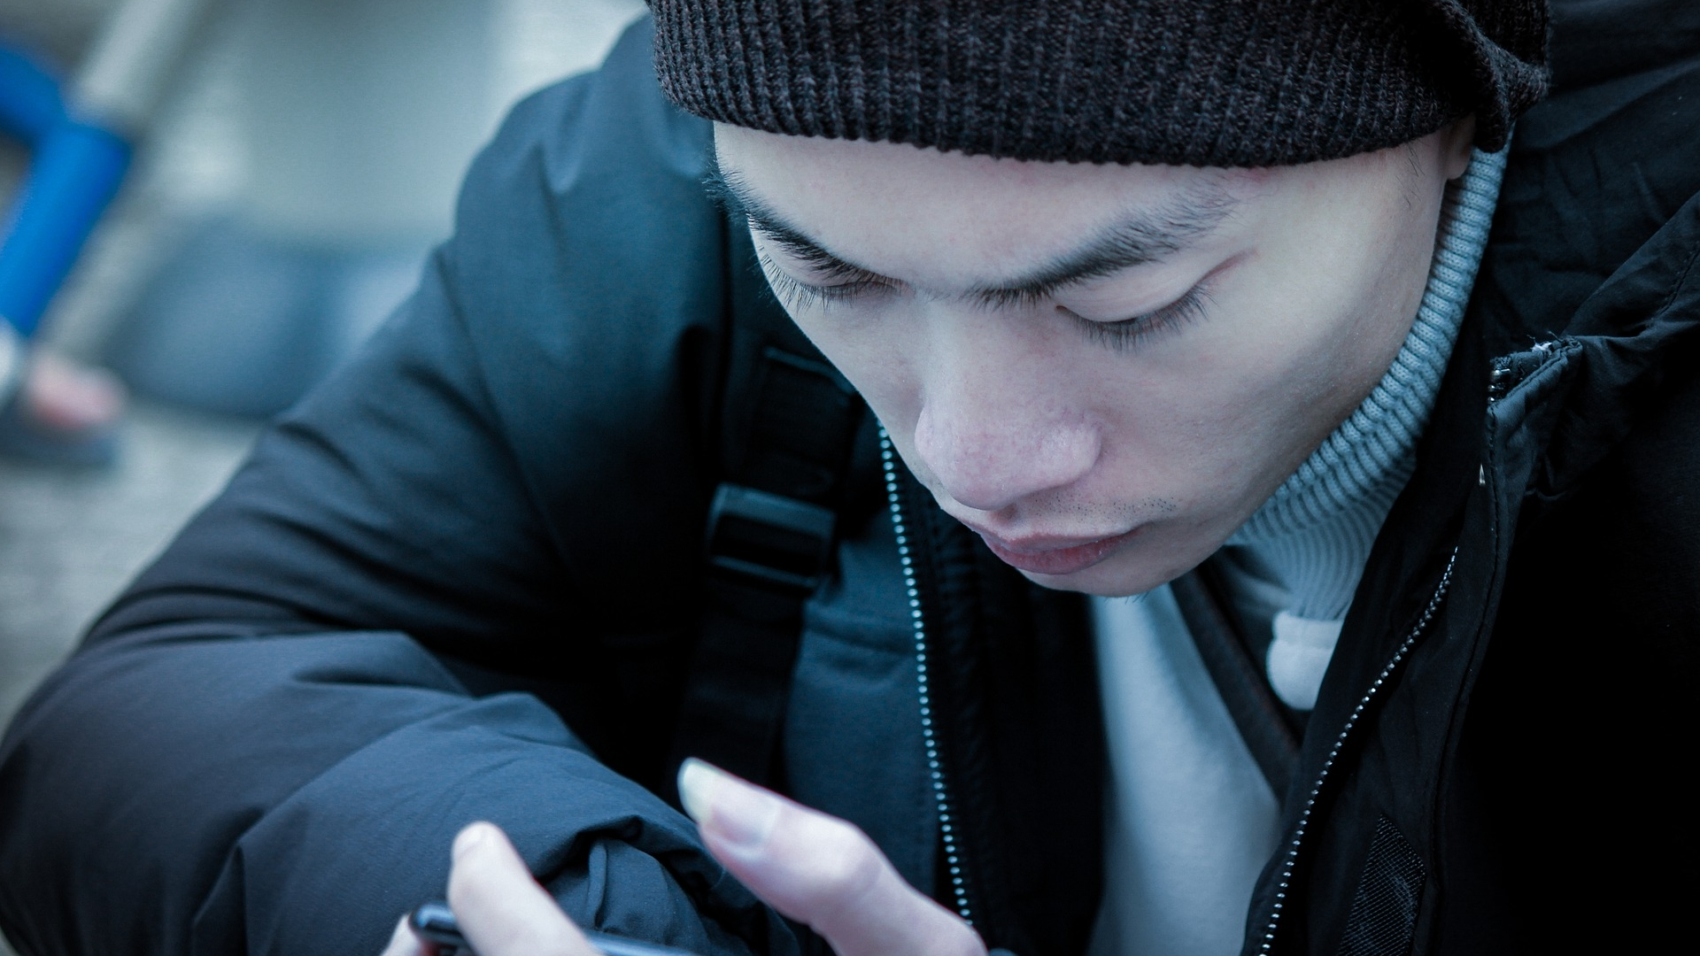 A man looks intently at his smartphone.